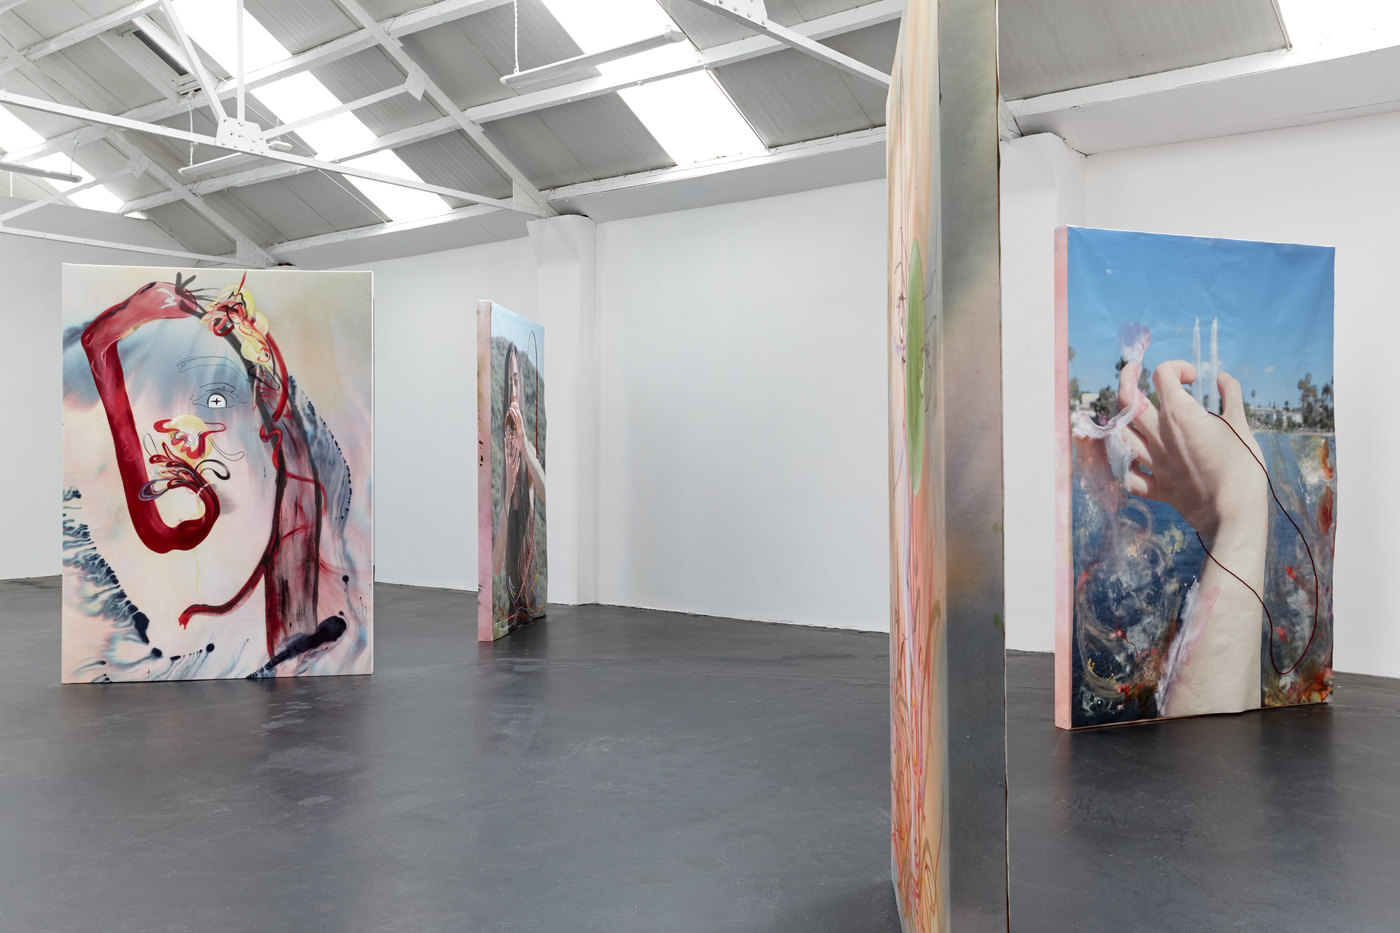 08. Nora Berman - Charm - Installation View VIII